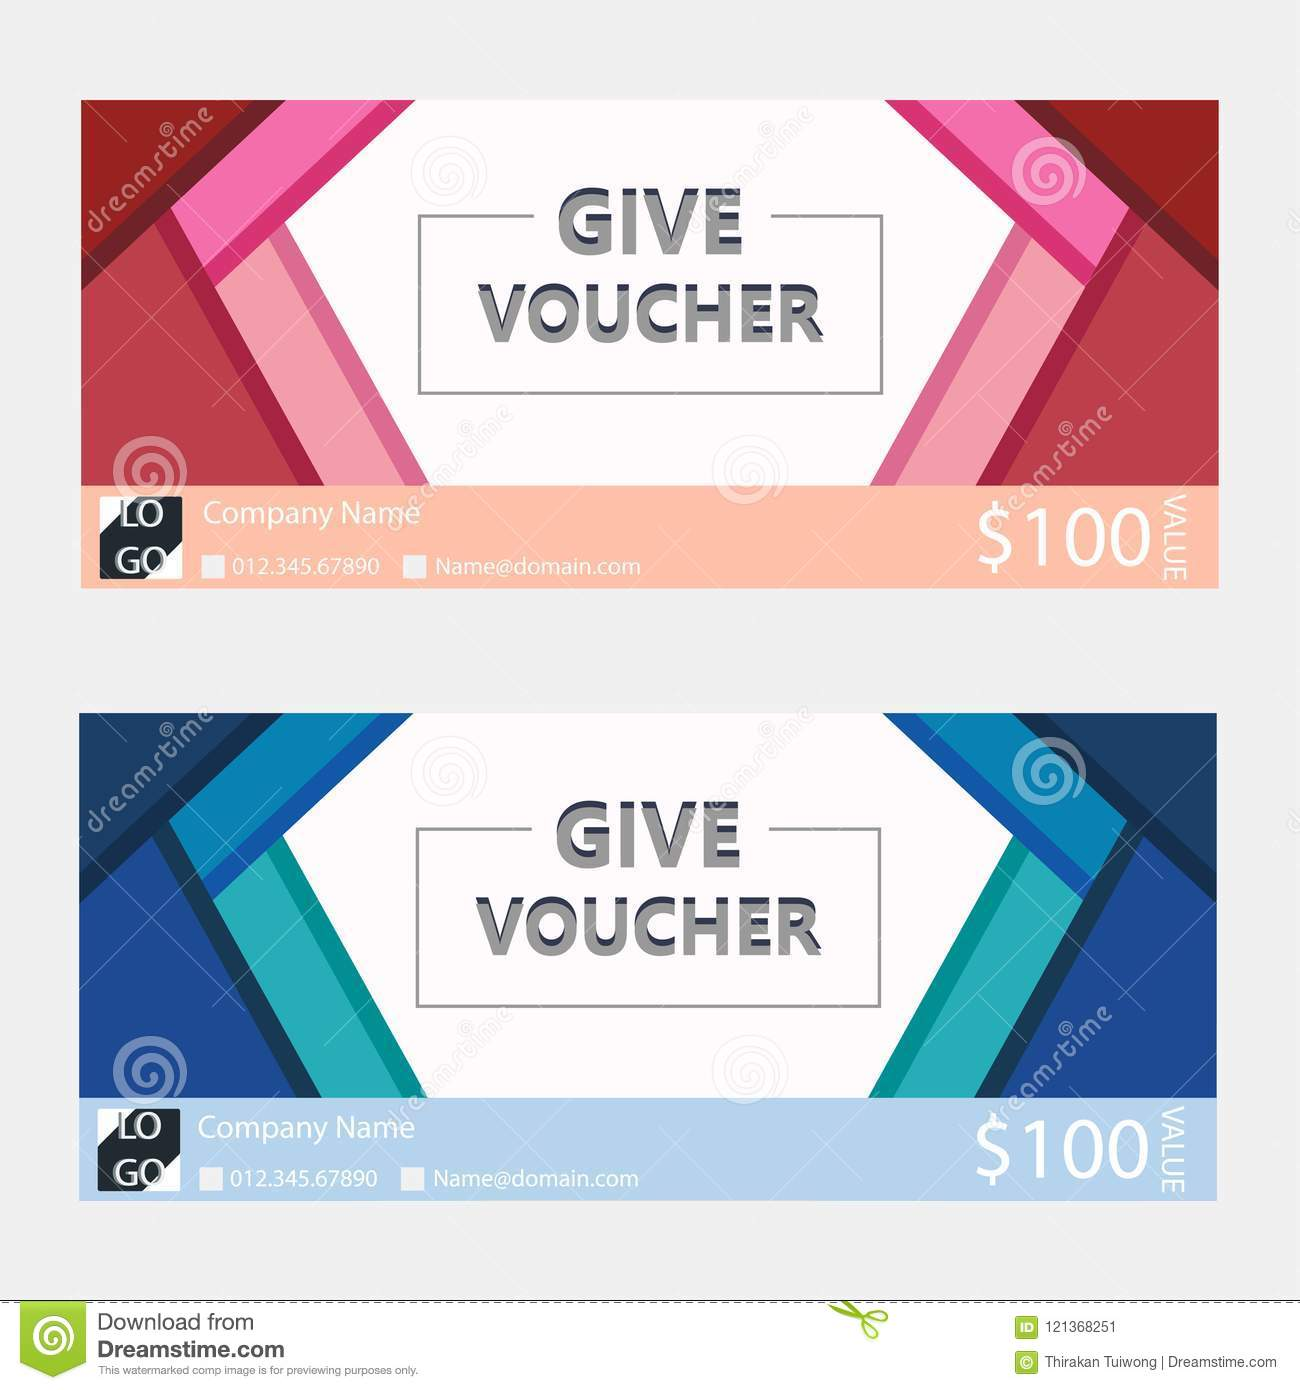 Gift vouchercoupon template with flat design stock illustration download gift vouchercoupon template with flat design stock illustration illustration of business flashek Images